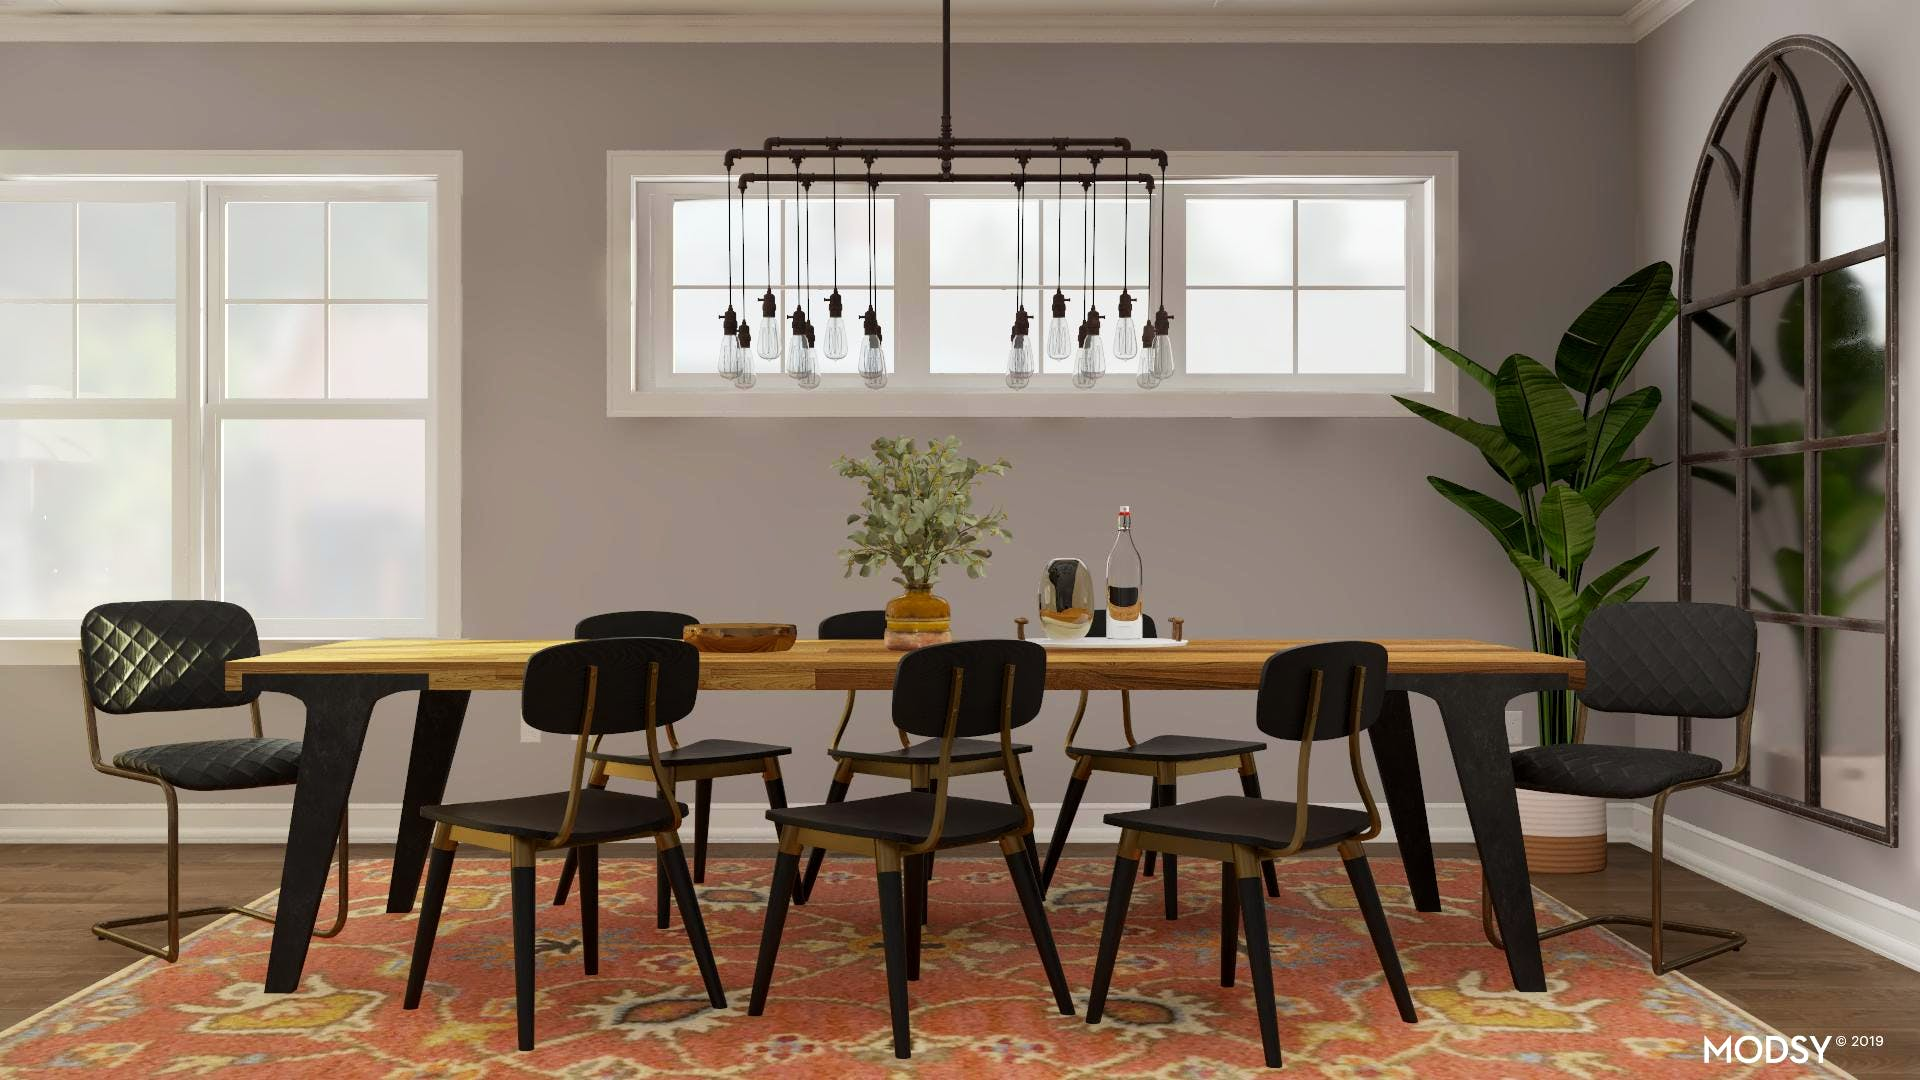 Modern + Earth Tones = Todays Dining